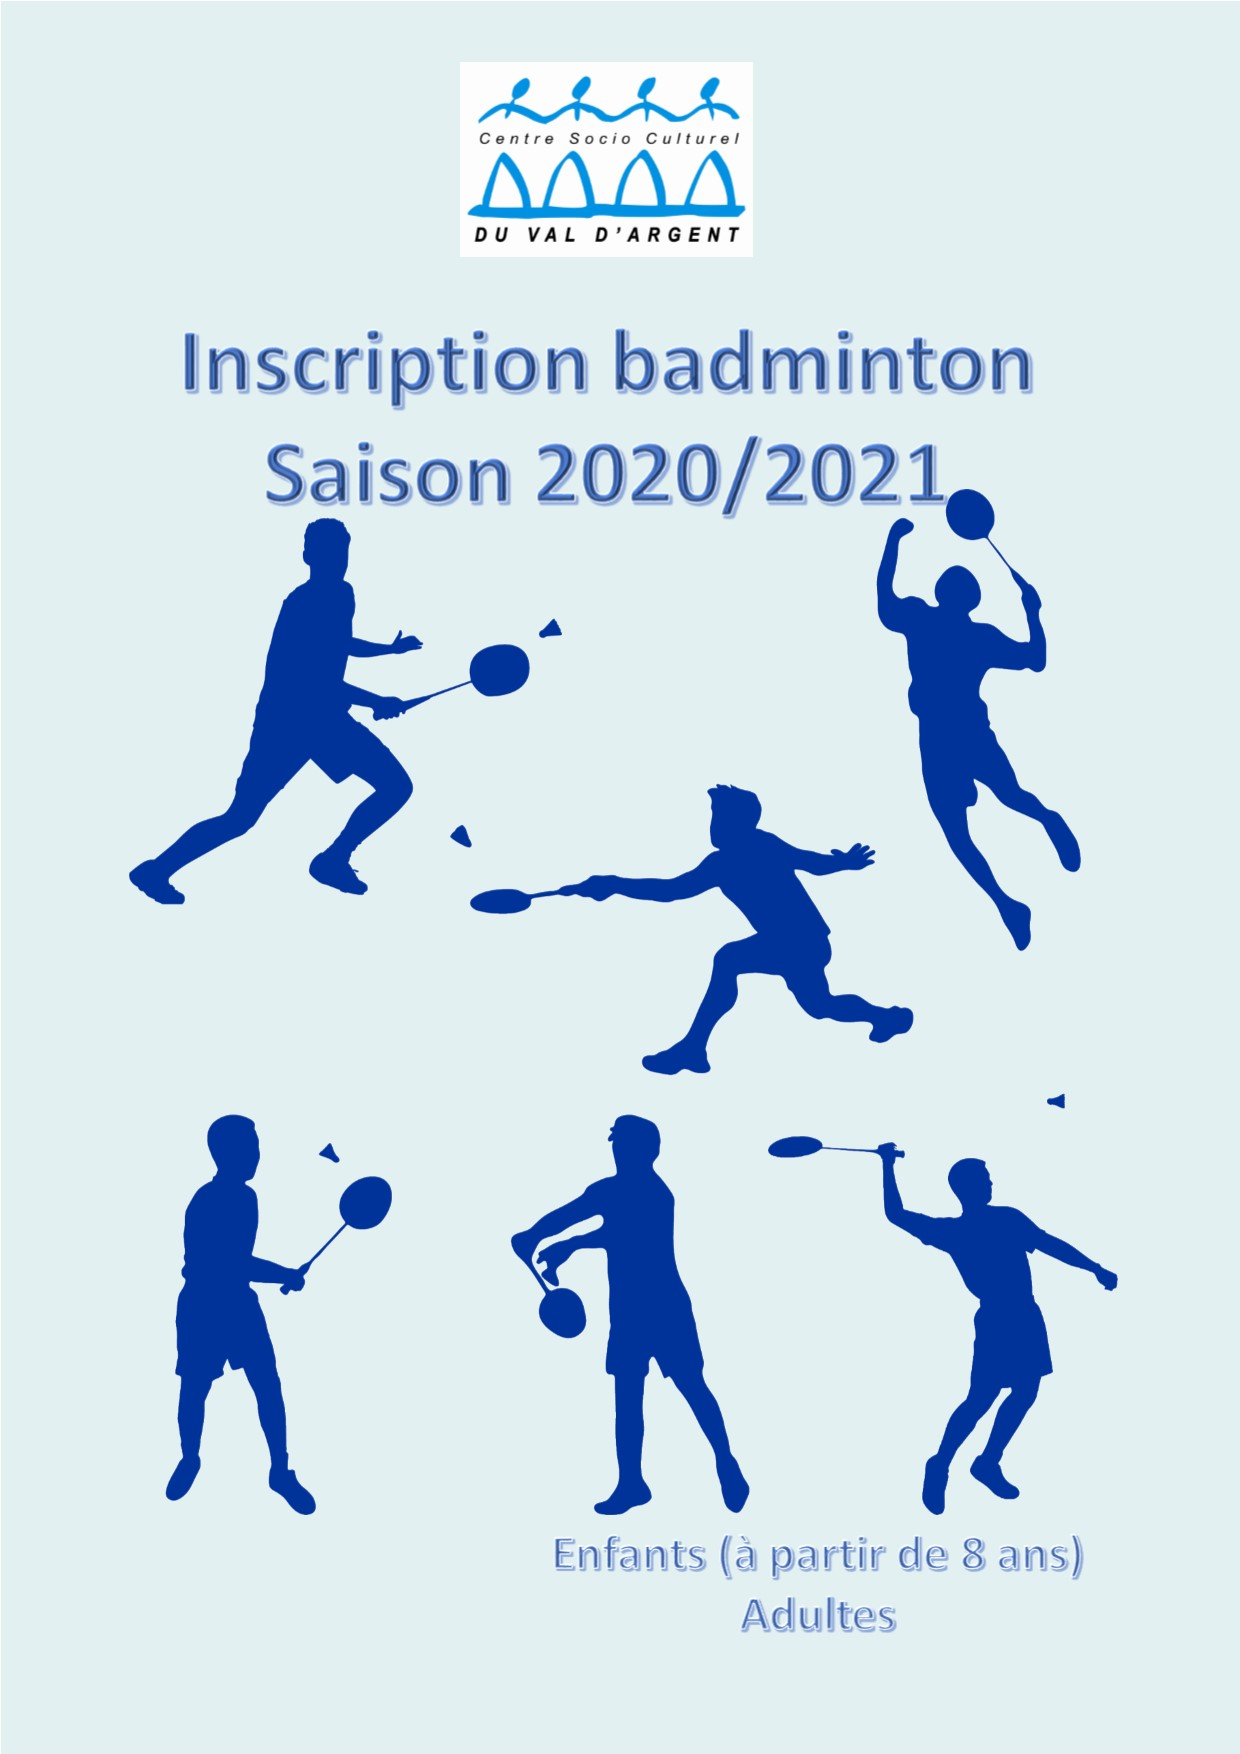 INSCRIPTION BADMINTON 2020 2021